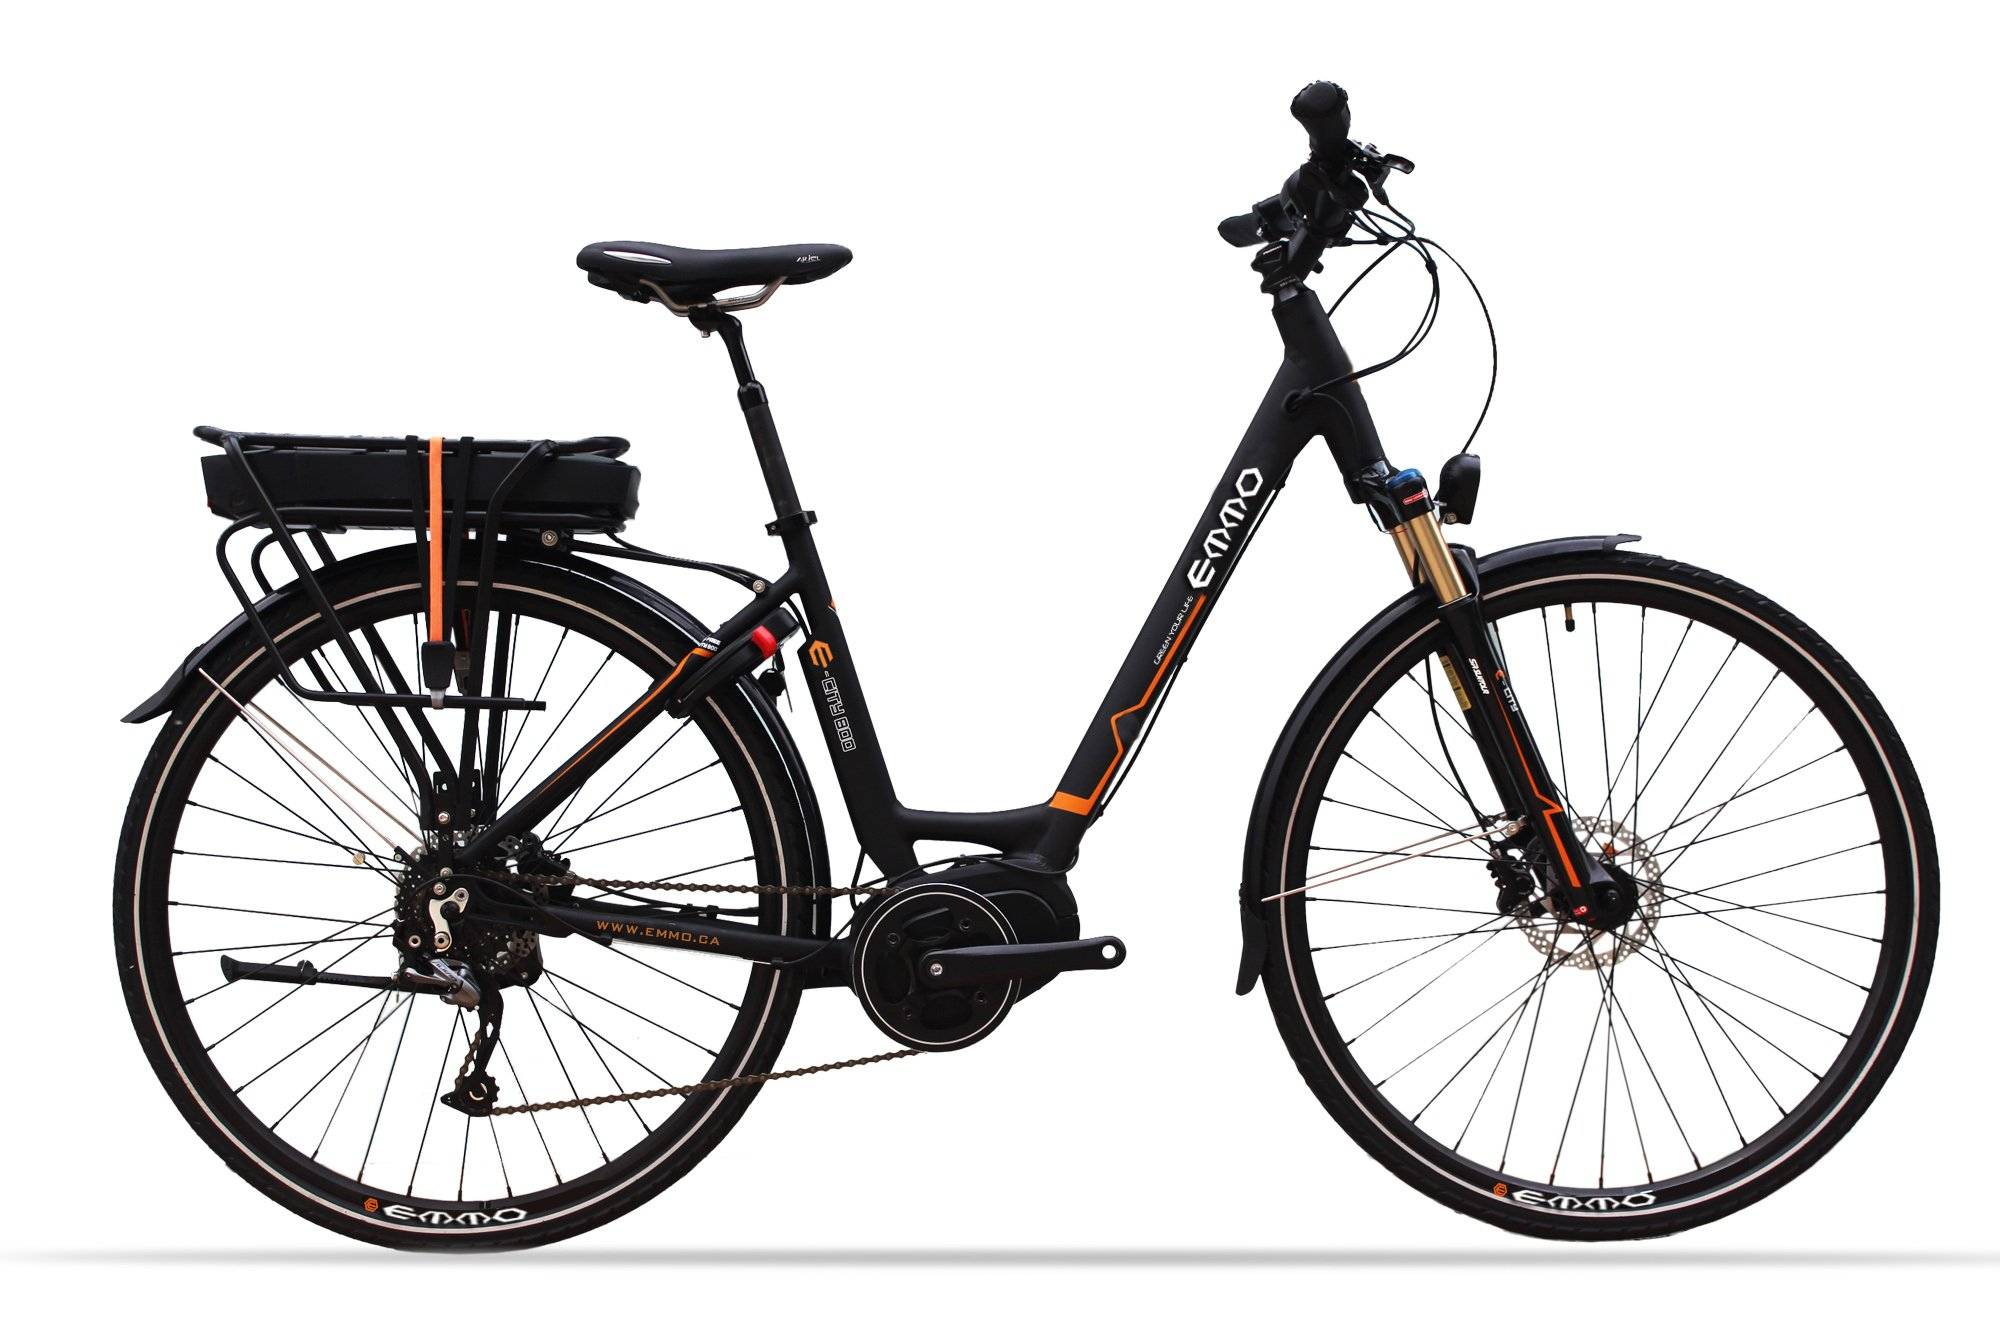 EMMO City 800 ebicycle